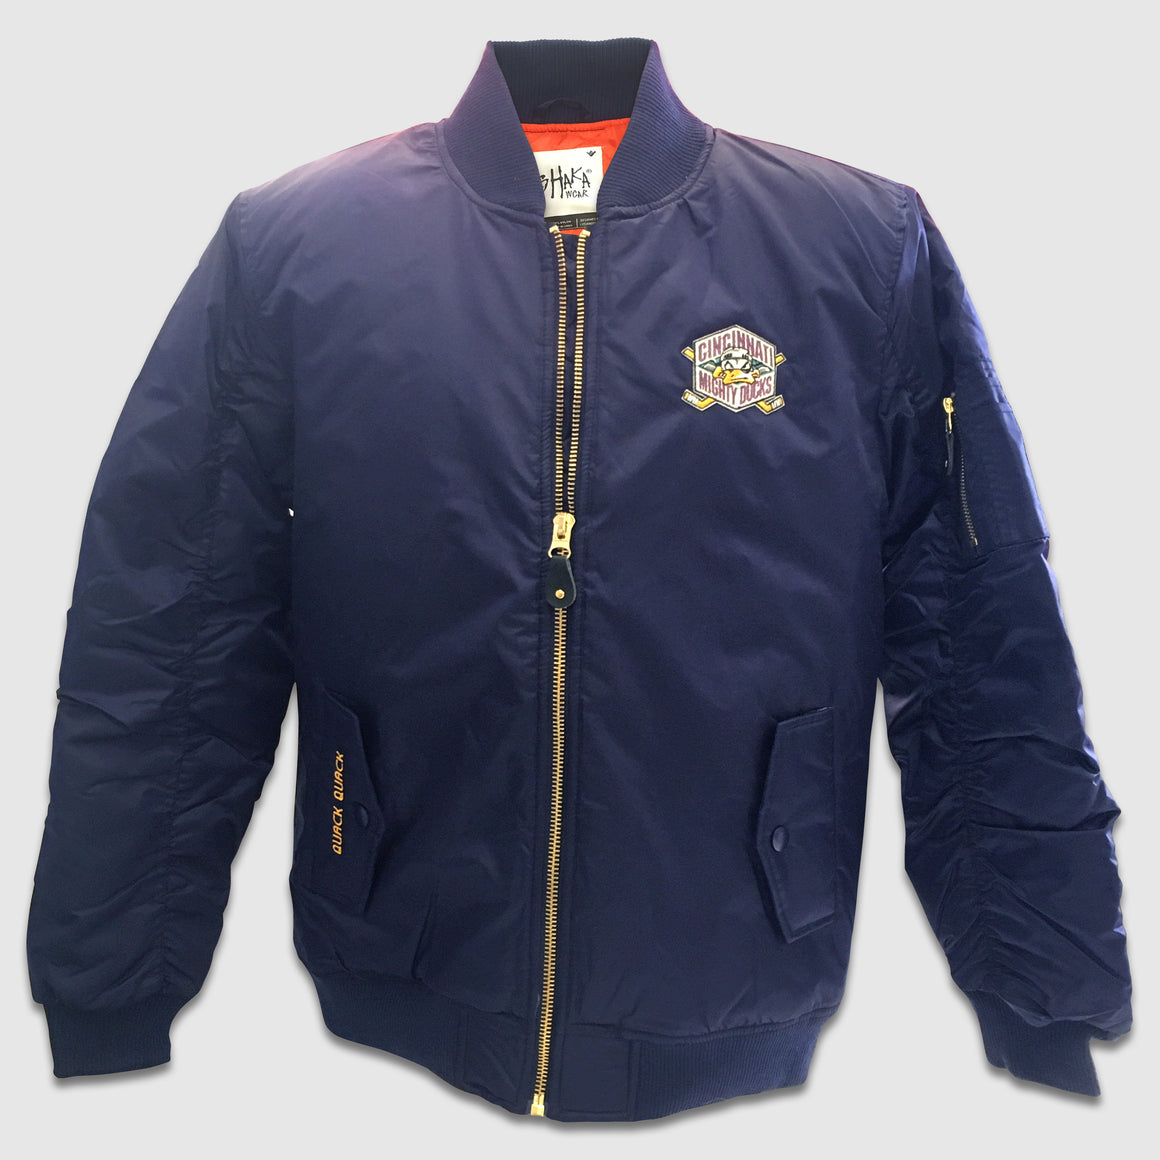 Mighty Ducks Zip-Up Bomber Jacket - Cincy Shirts